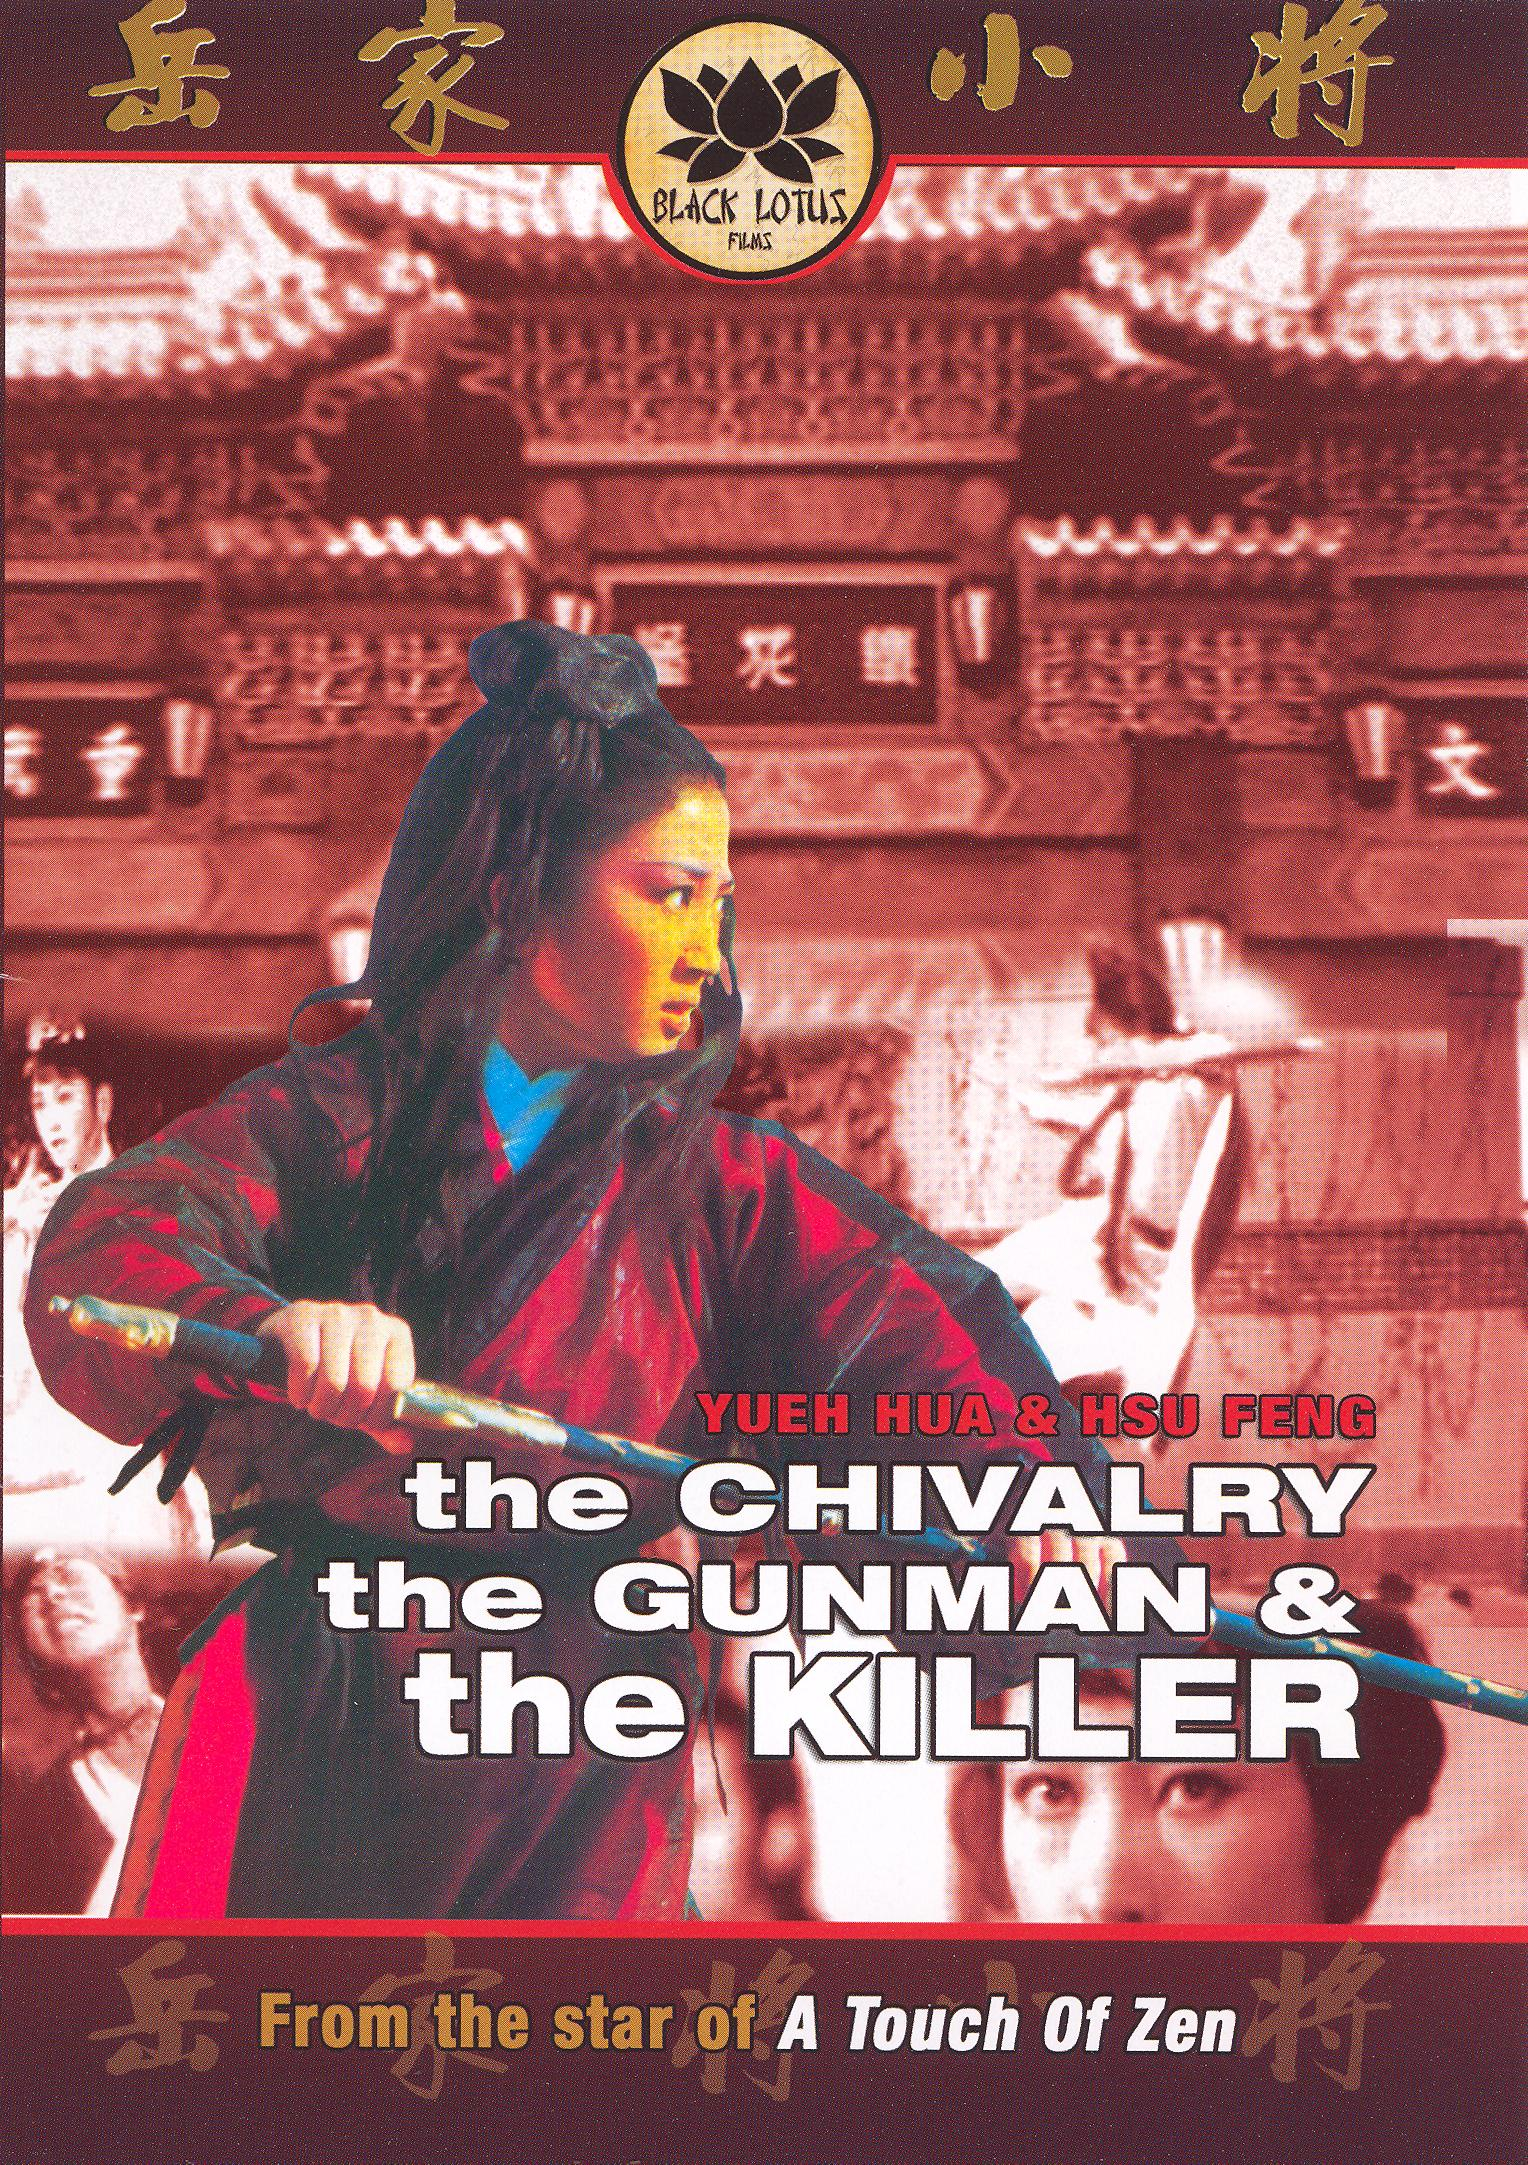 The Chivarly, The Gunman and the Killer